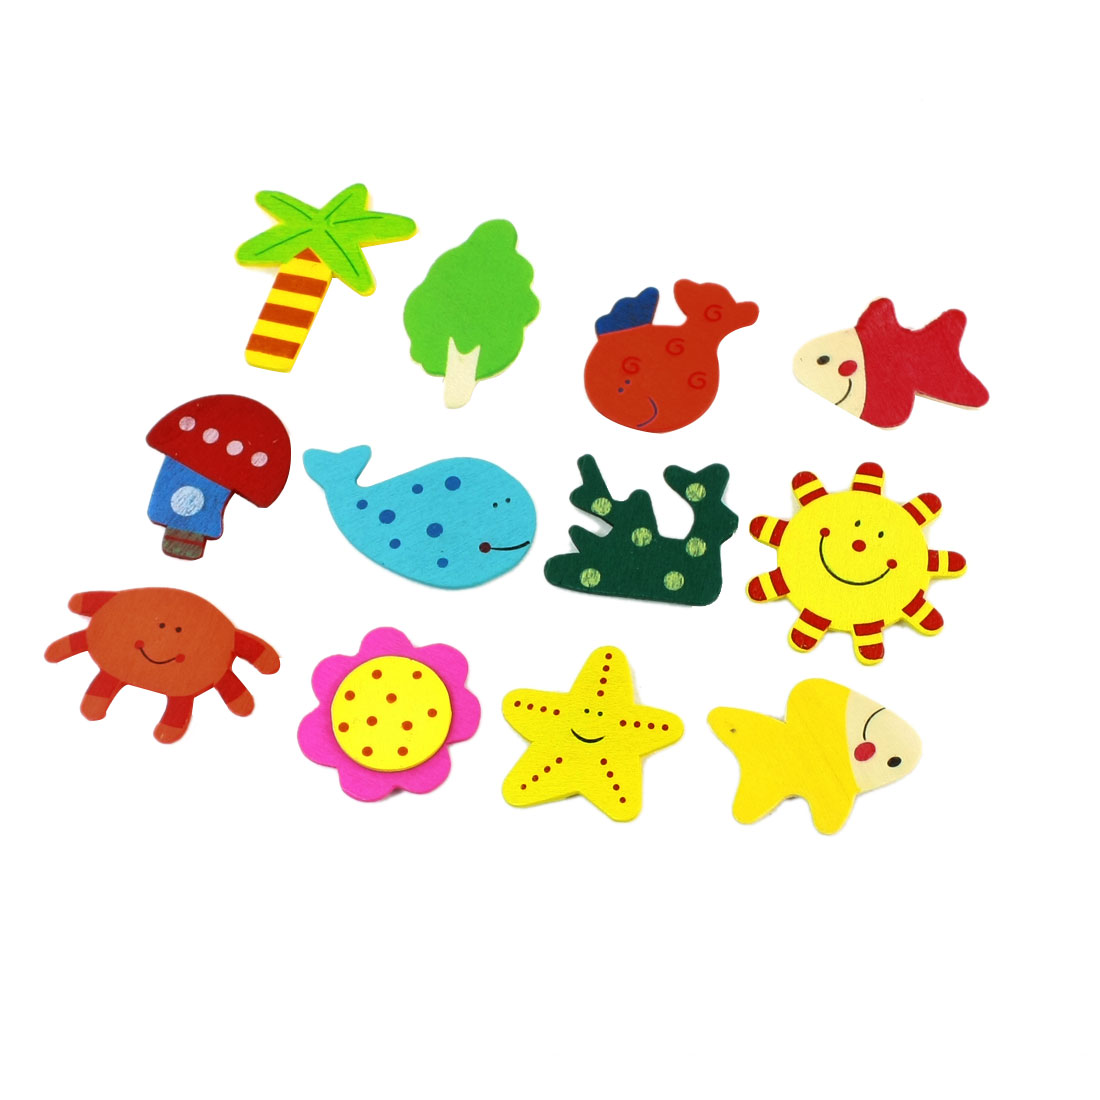 12pcs Colorful Wooden Fish Tress Star Sticker Decor for Refrigerator